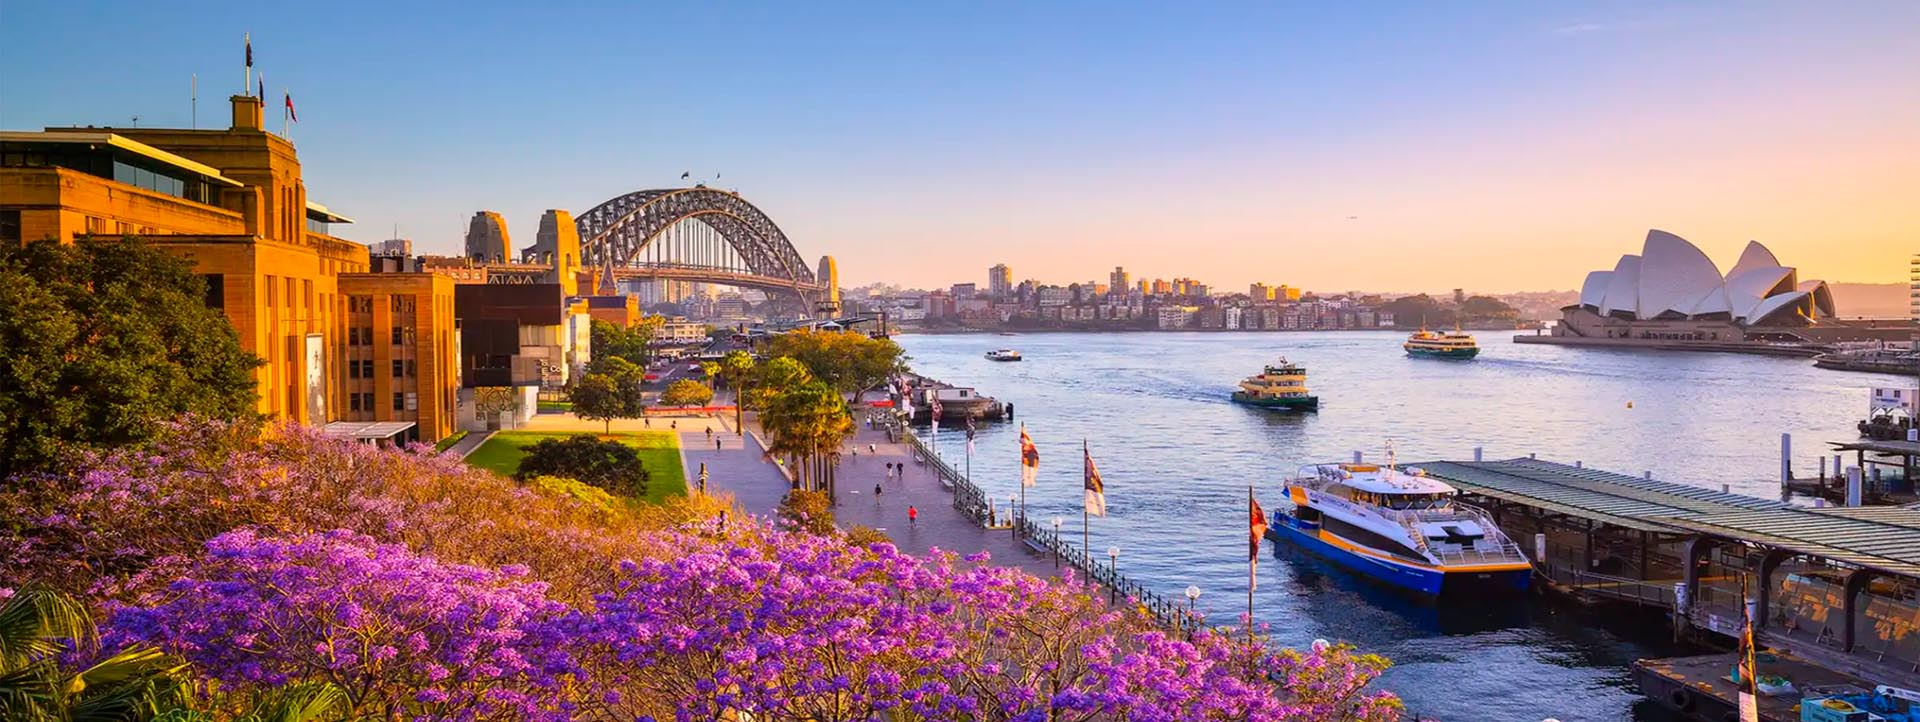 SYDNEY HARBOUR AFTERNOON DISCOVERY tours and cruises